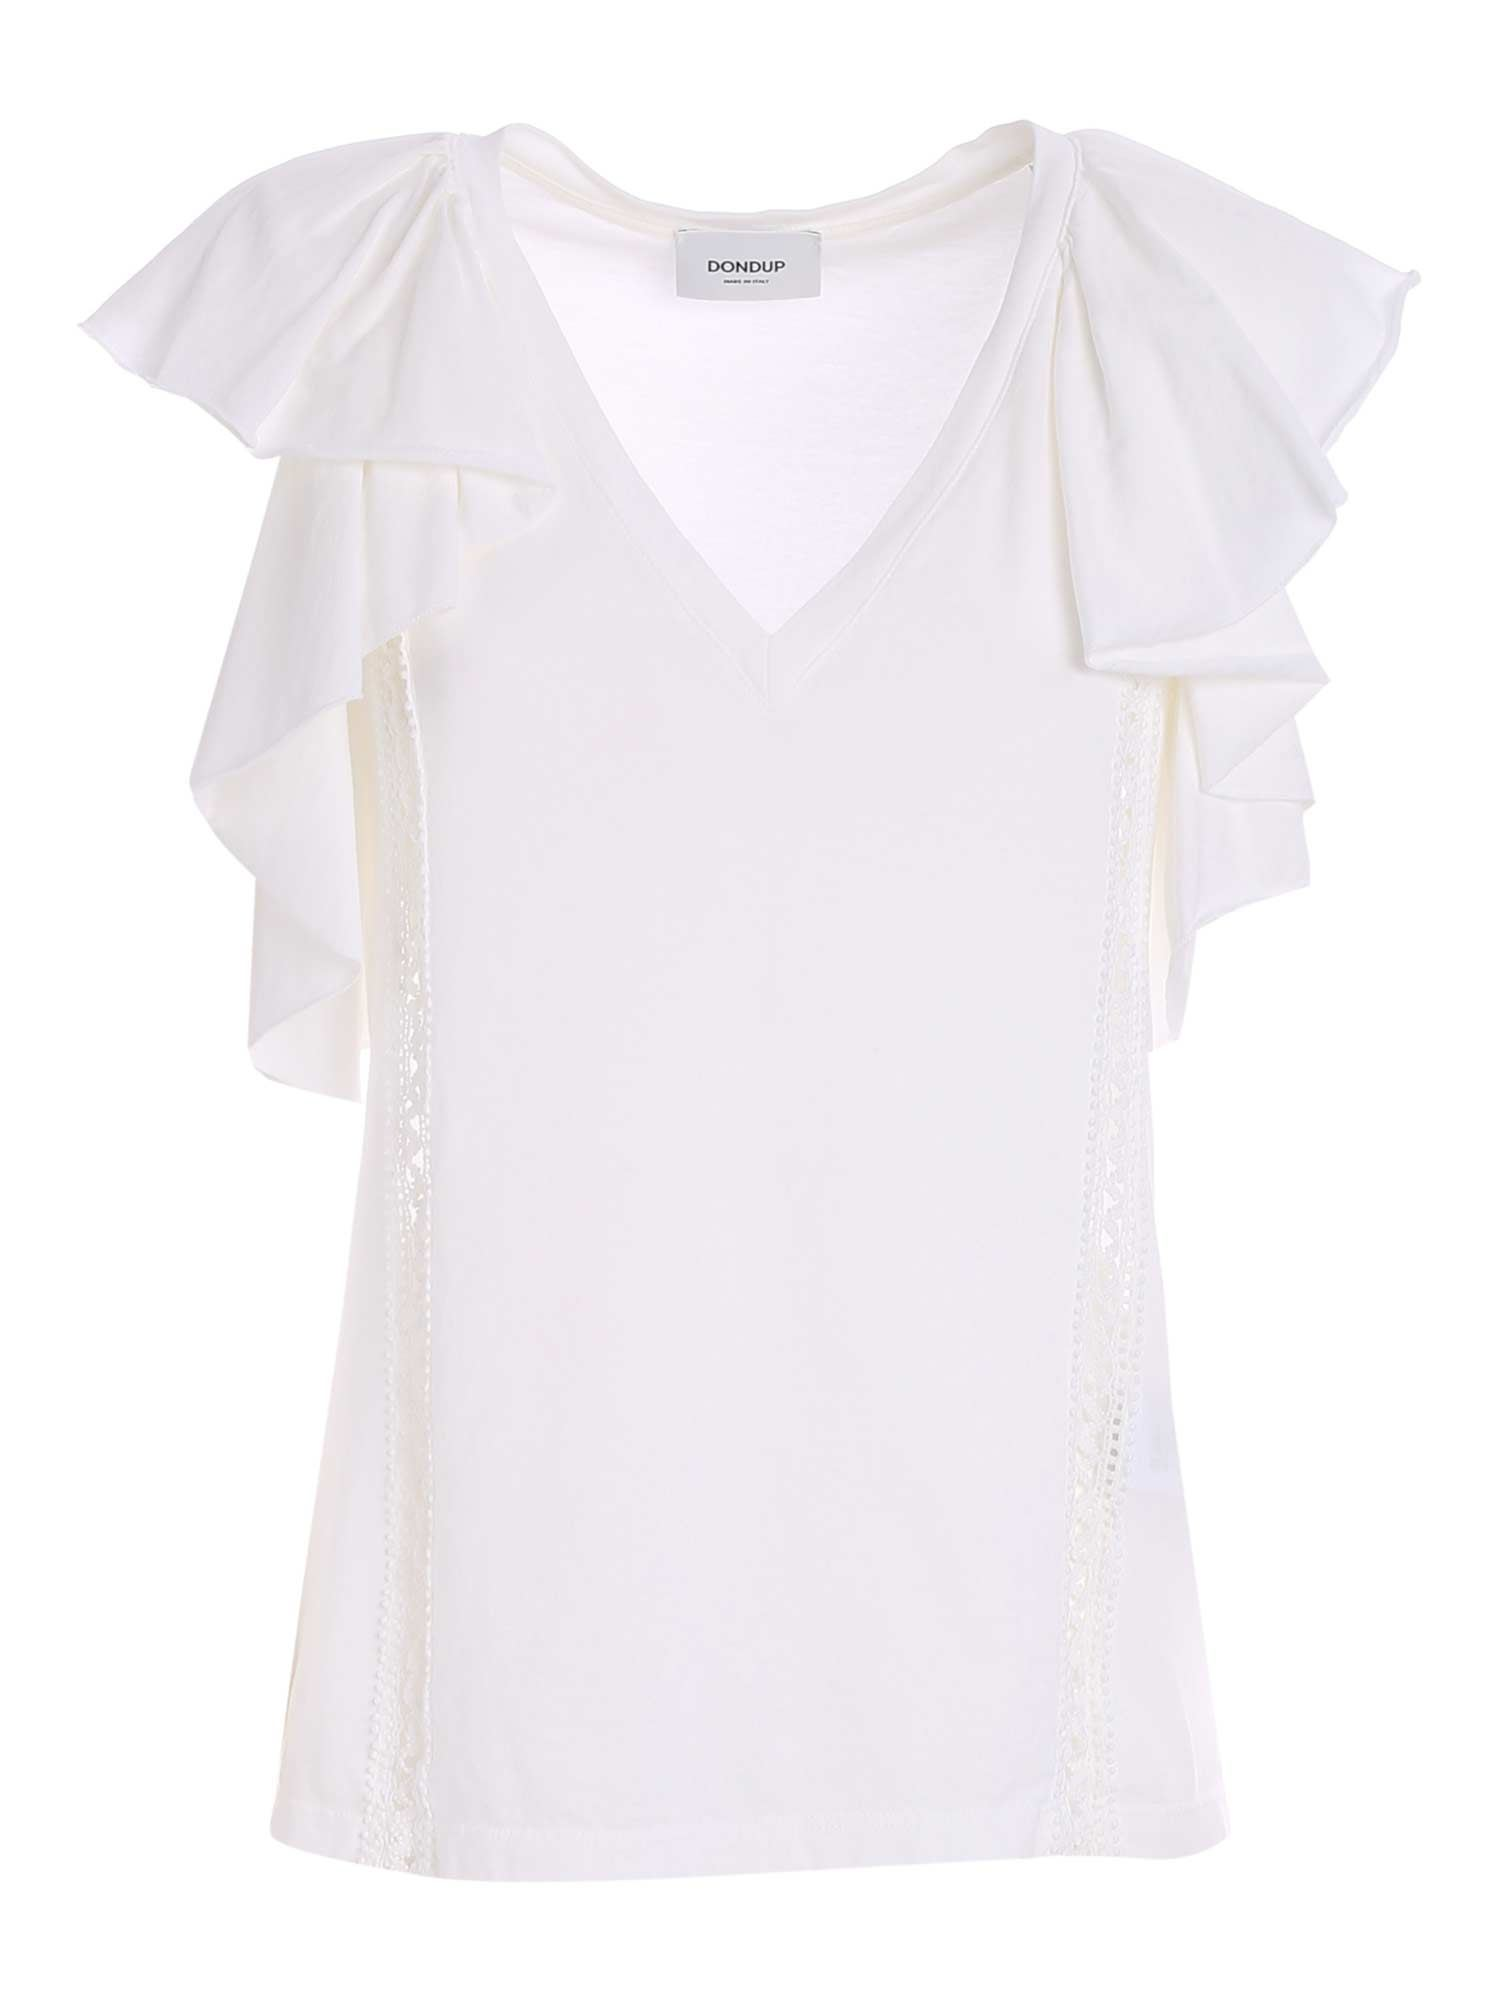 Dondup RUFFLES AND EMBROIDERY TOP IN WHITE